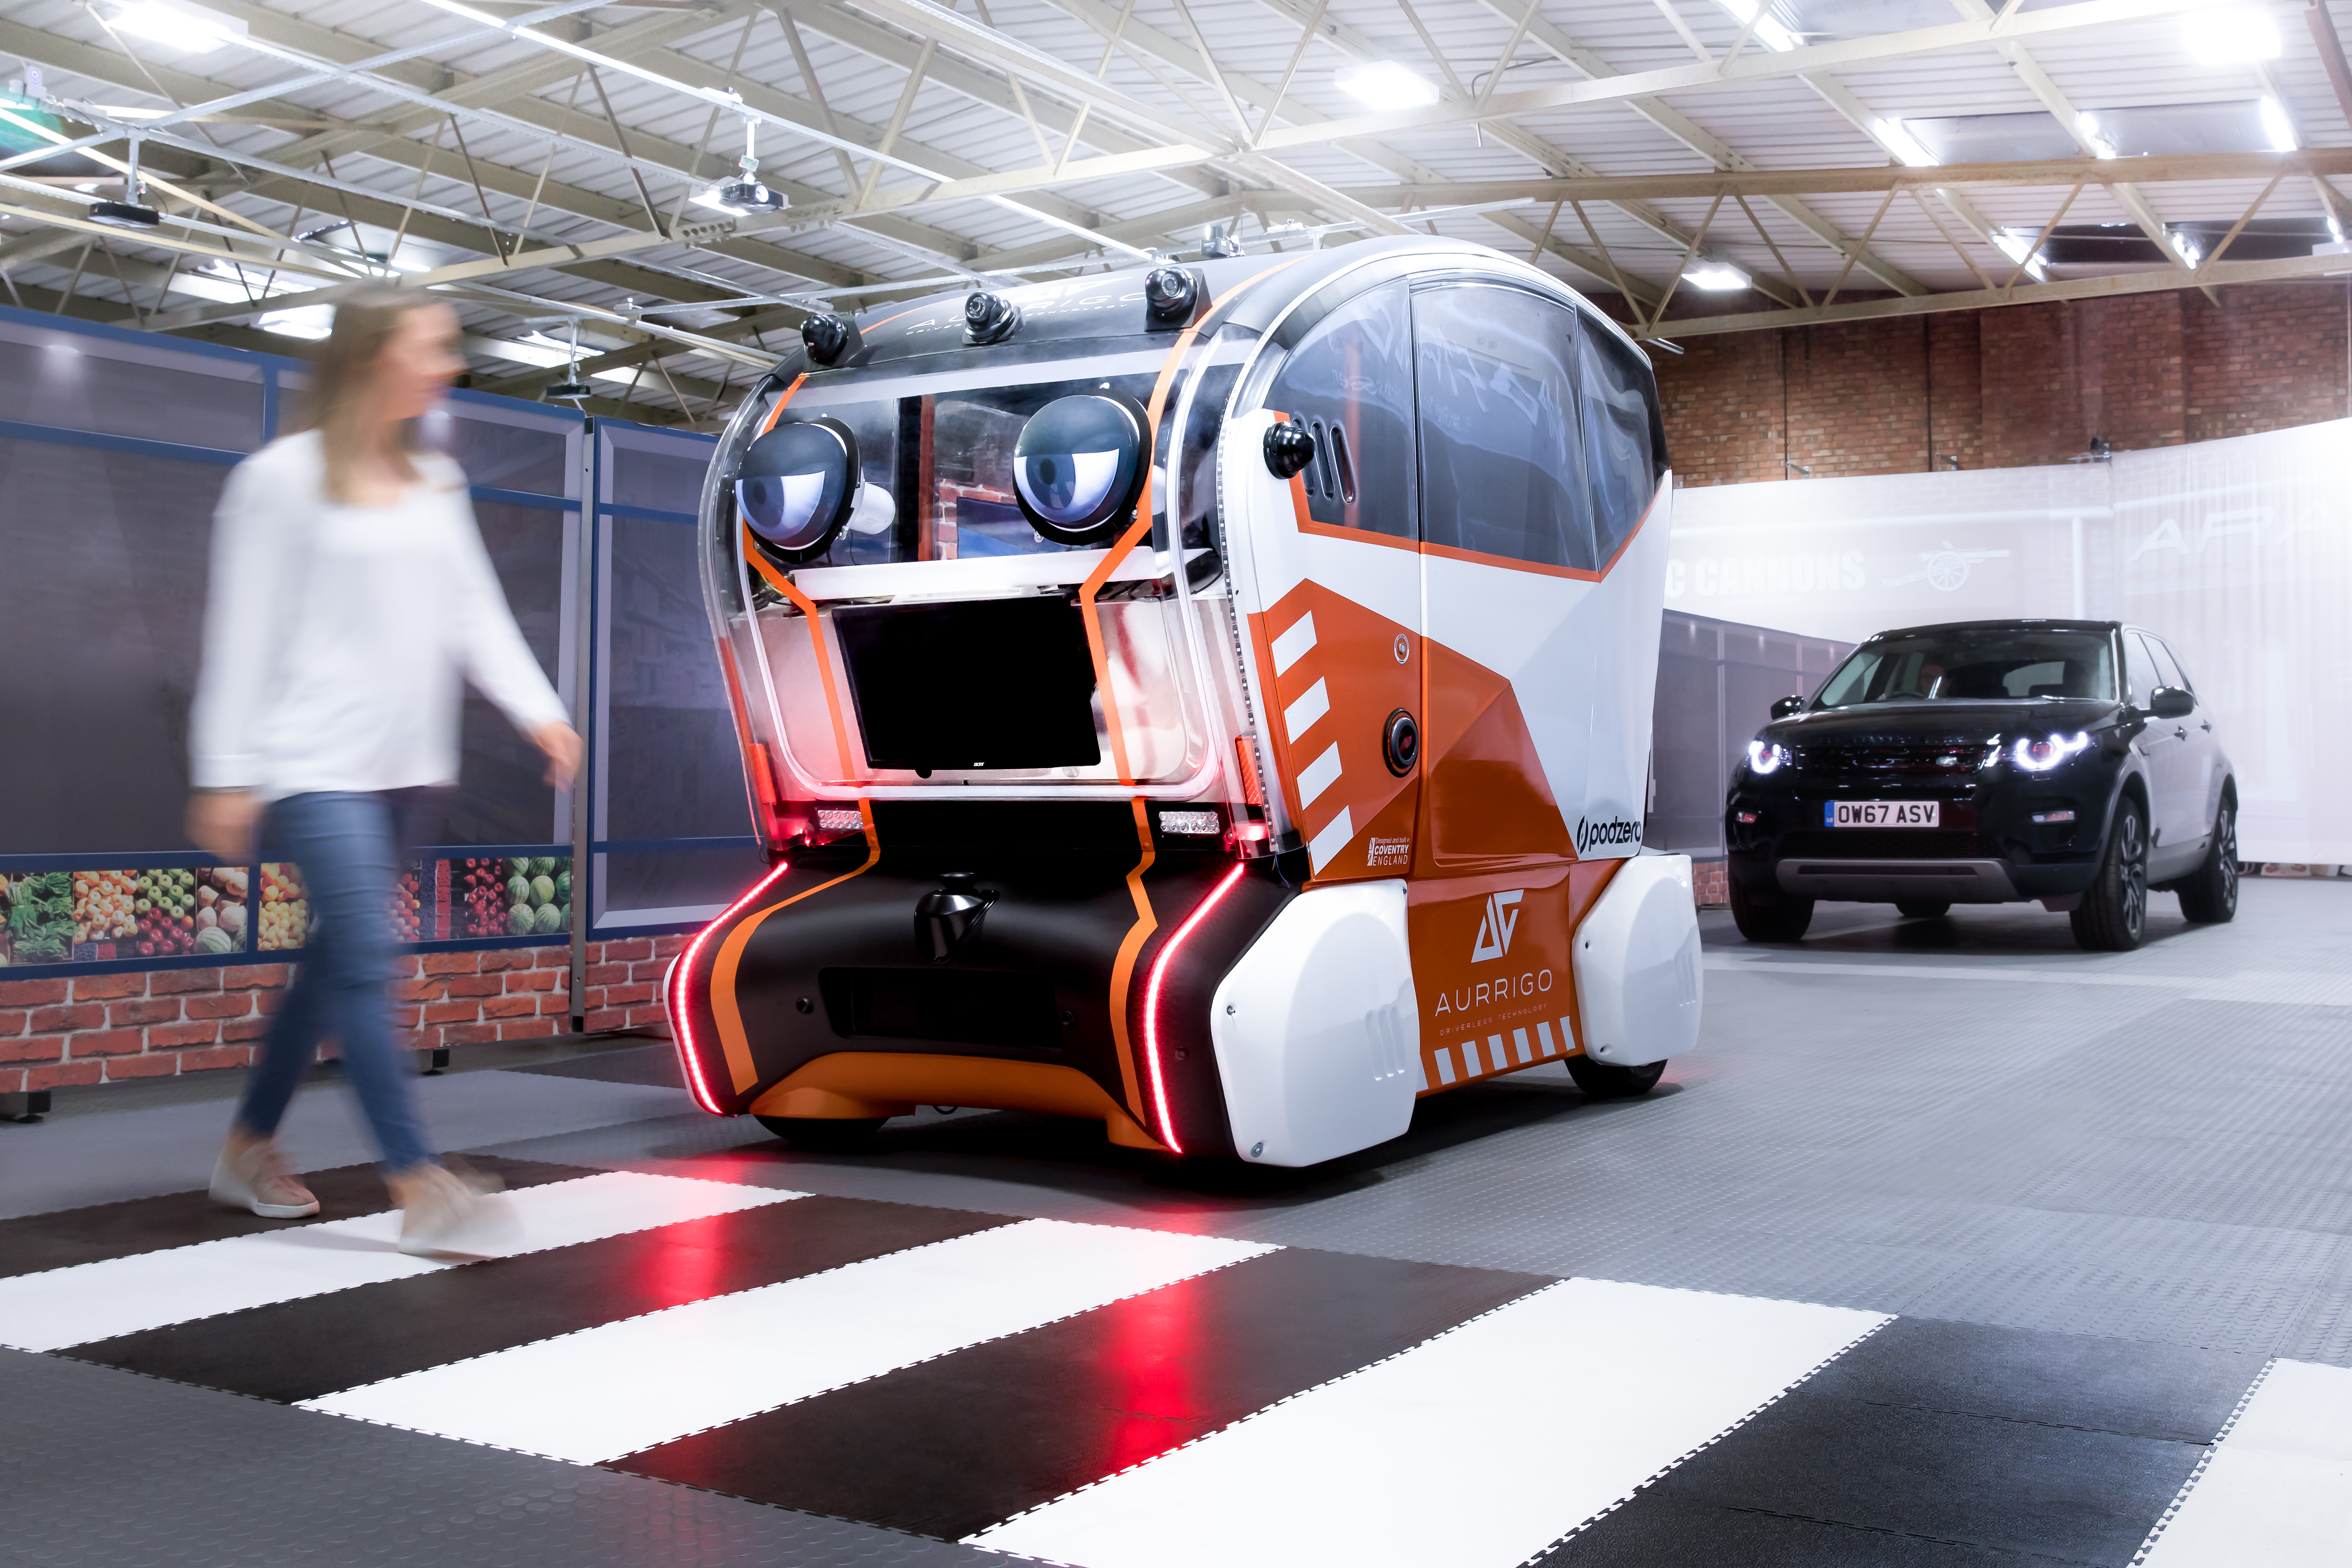 """The intelligent self-driving pods have large """"virtual eyes"""" to interact with other road users, making """"eye contact"""" with pedestrians to signal intent, and these are part of engineers' work with psychologists to understand human trust in autonomous vehicles."""